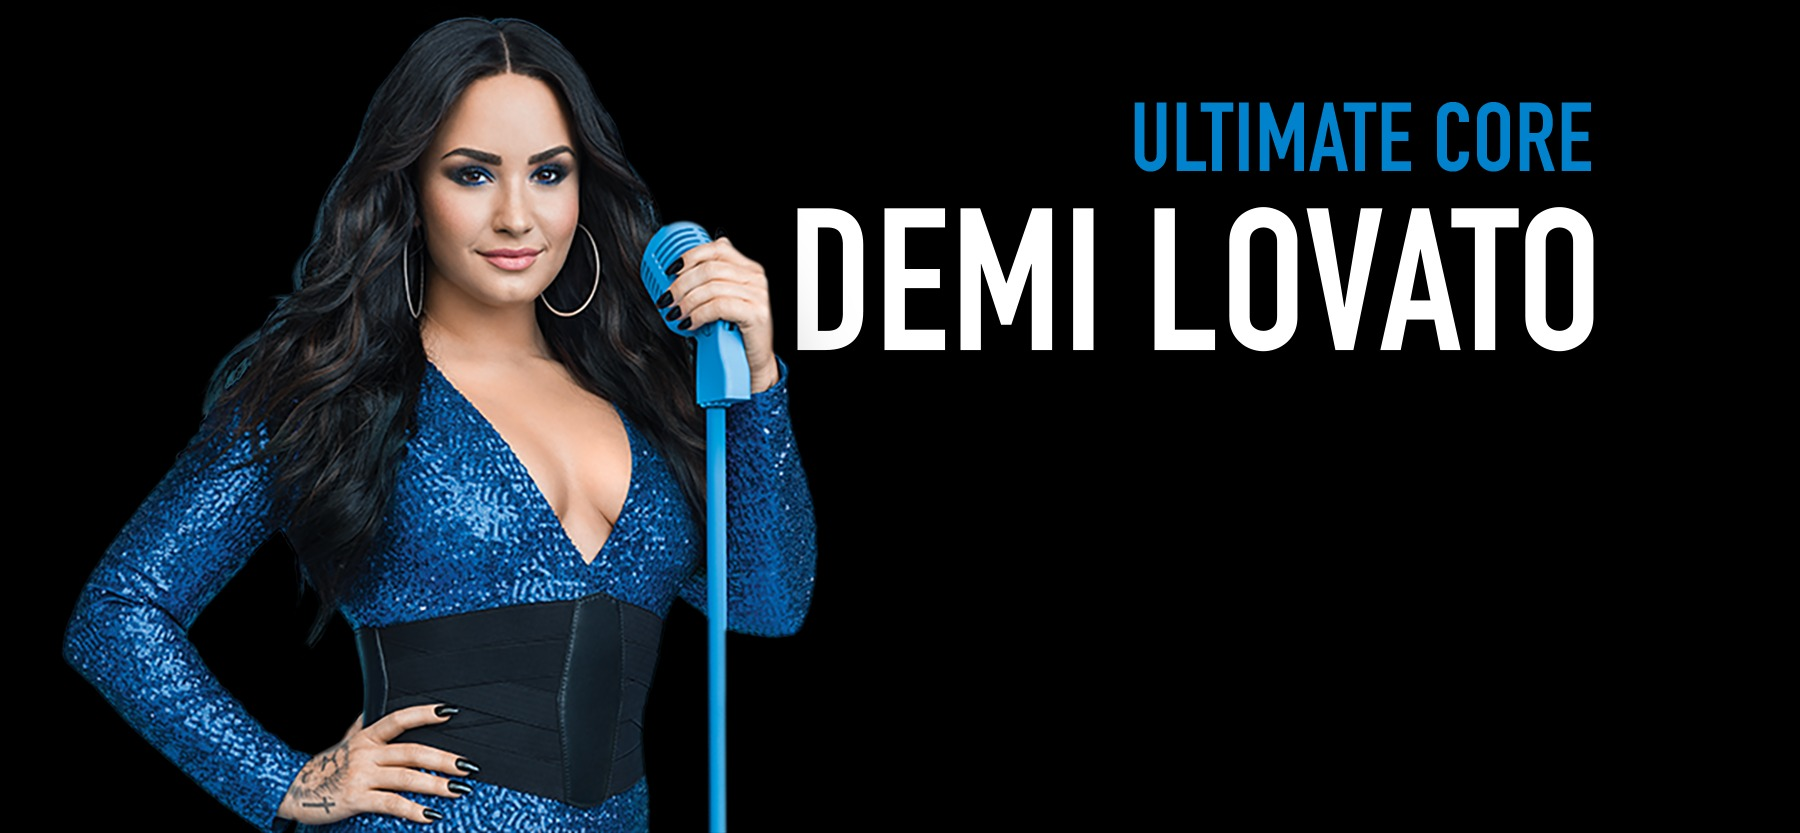 Core Demi Lovato Sweepstakes - Enter To Win StubHub Gift Card And A Guitar